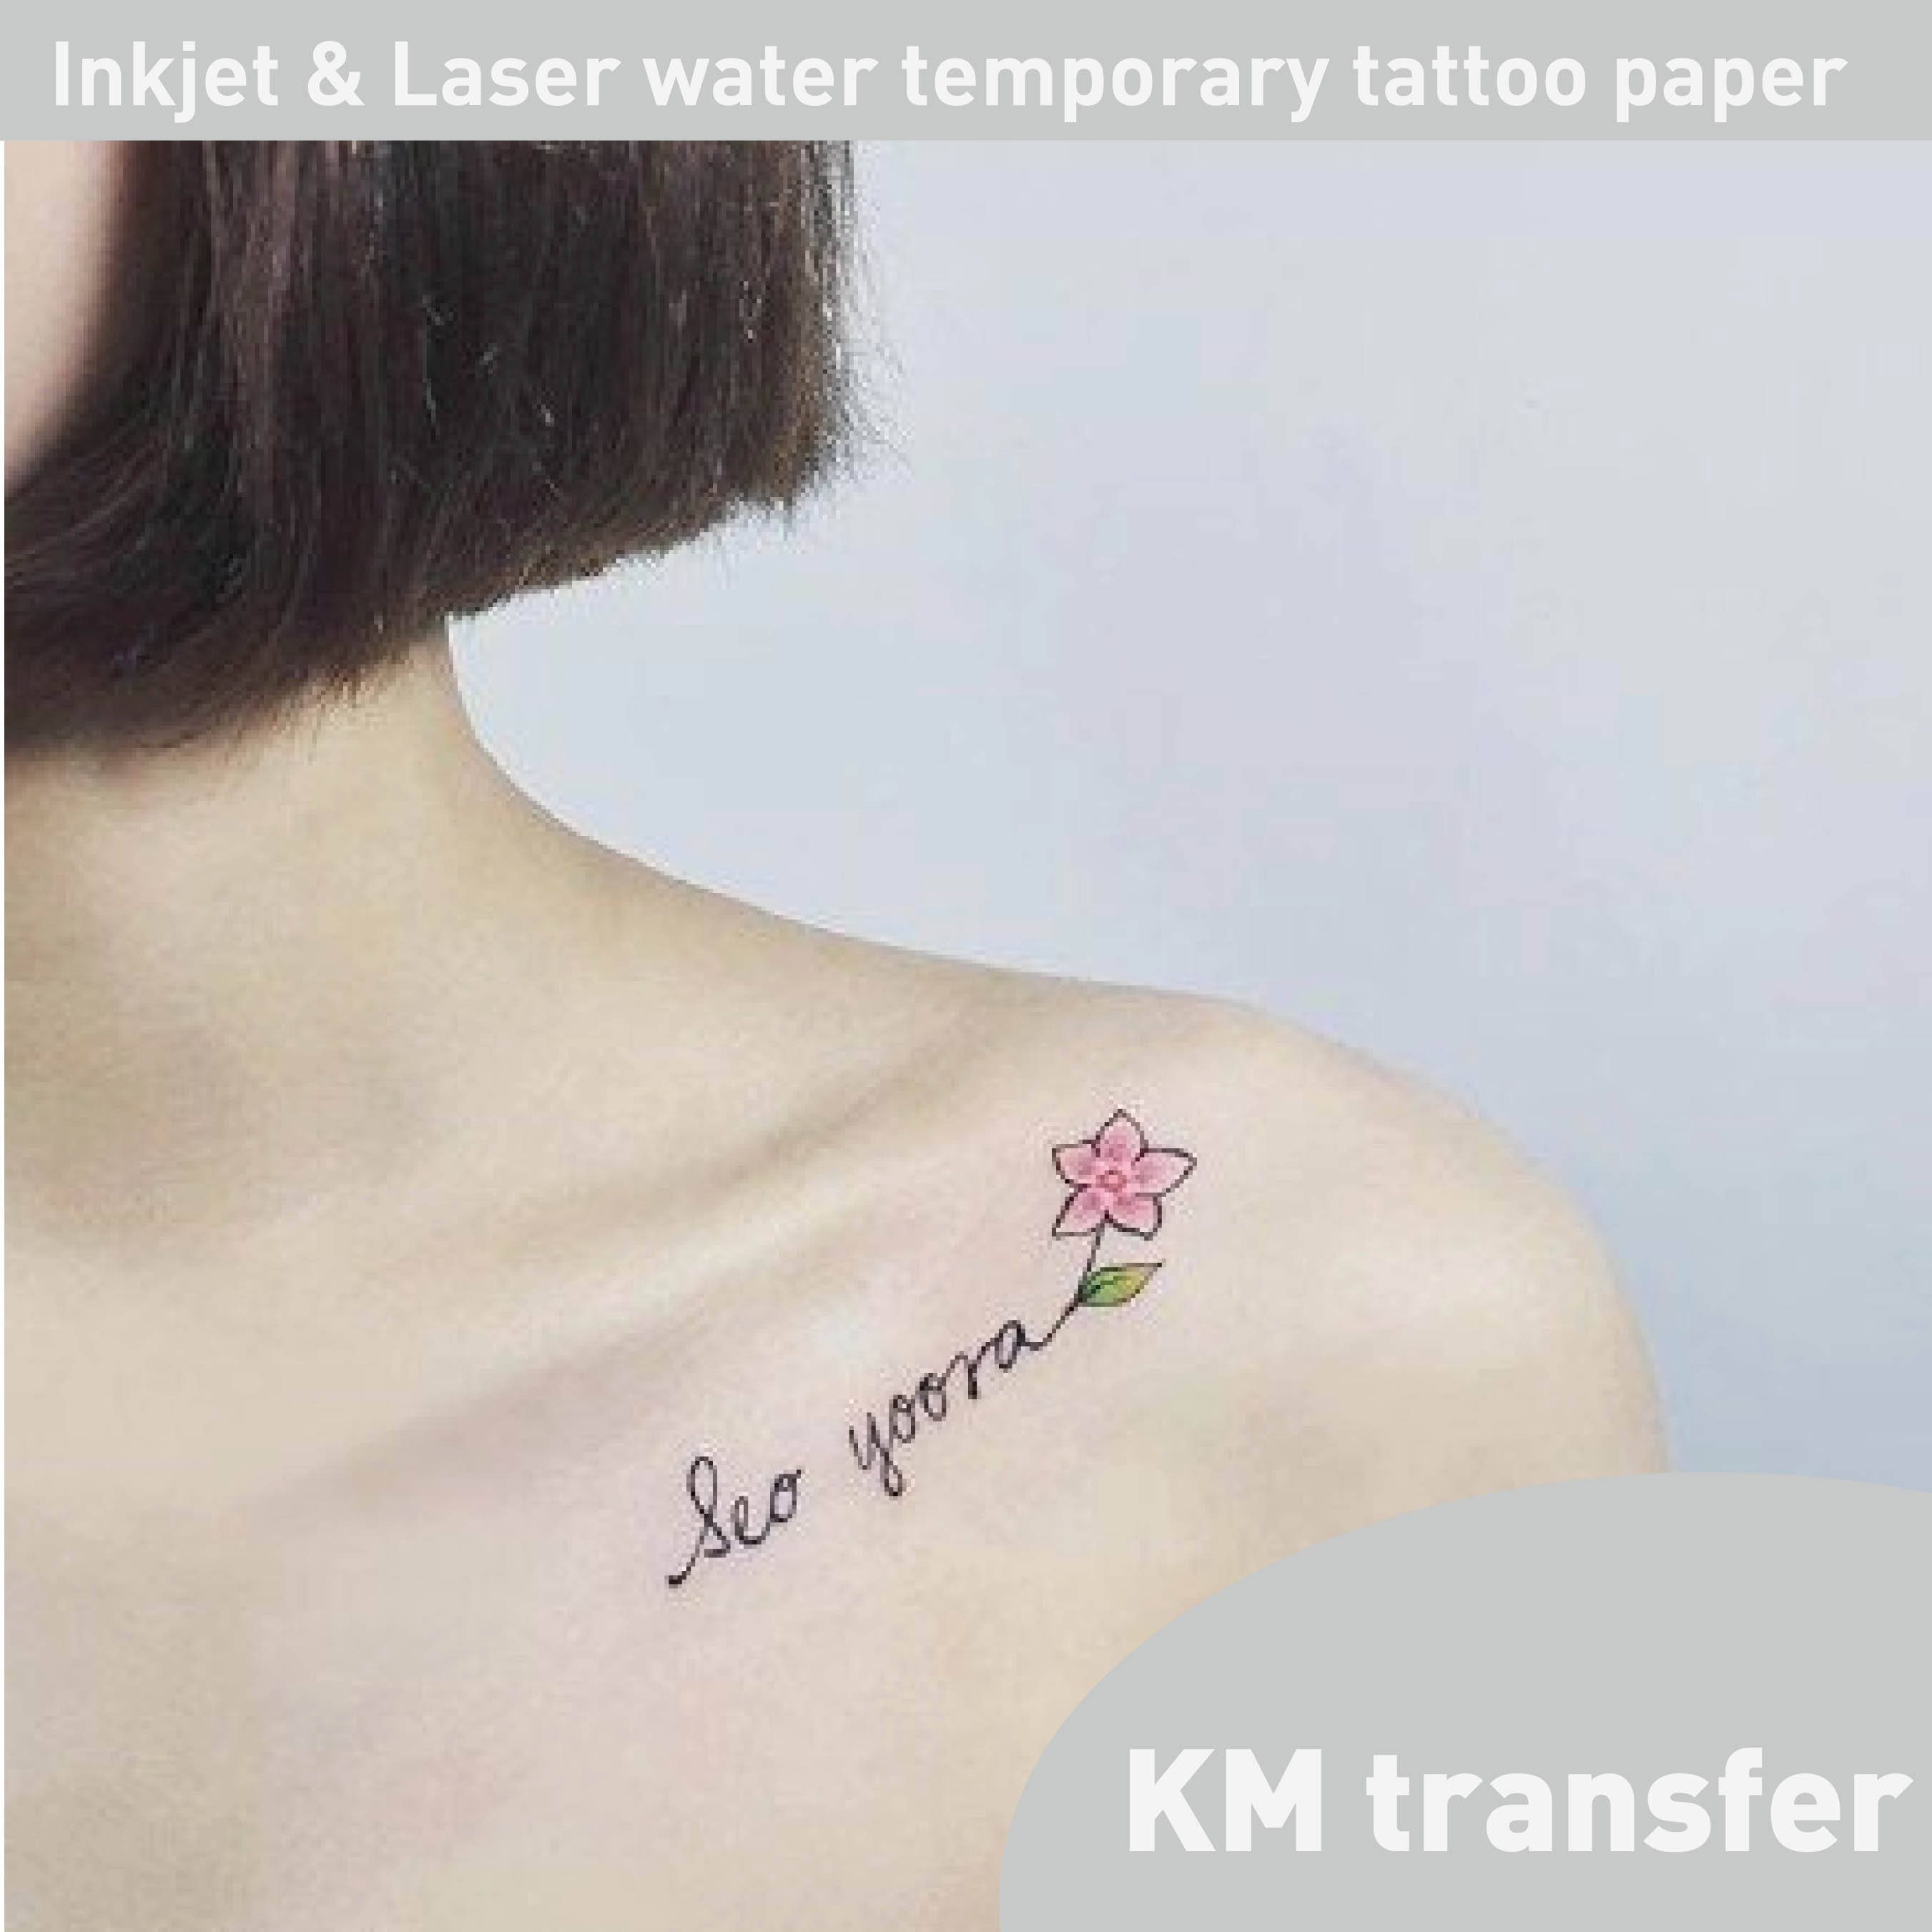 Inkjet & Laser skin use home creative arts Water slide temporary tattoo paper inkjet